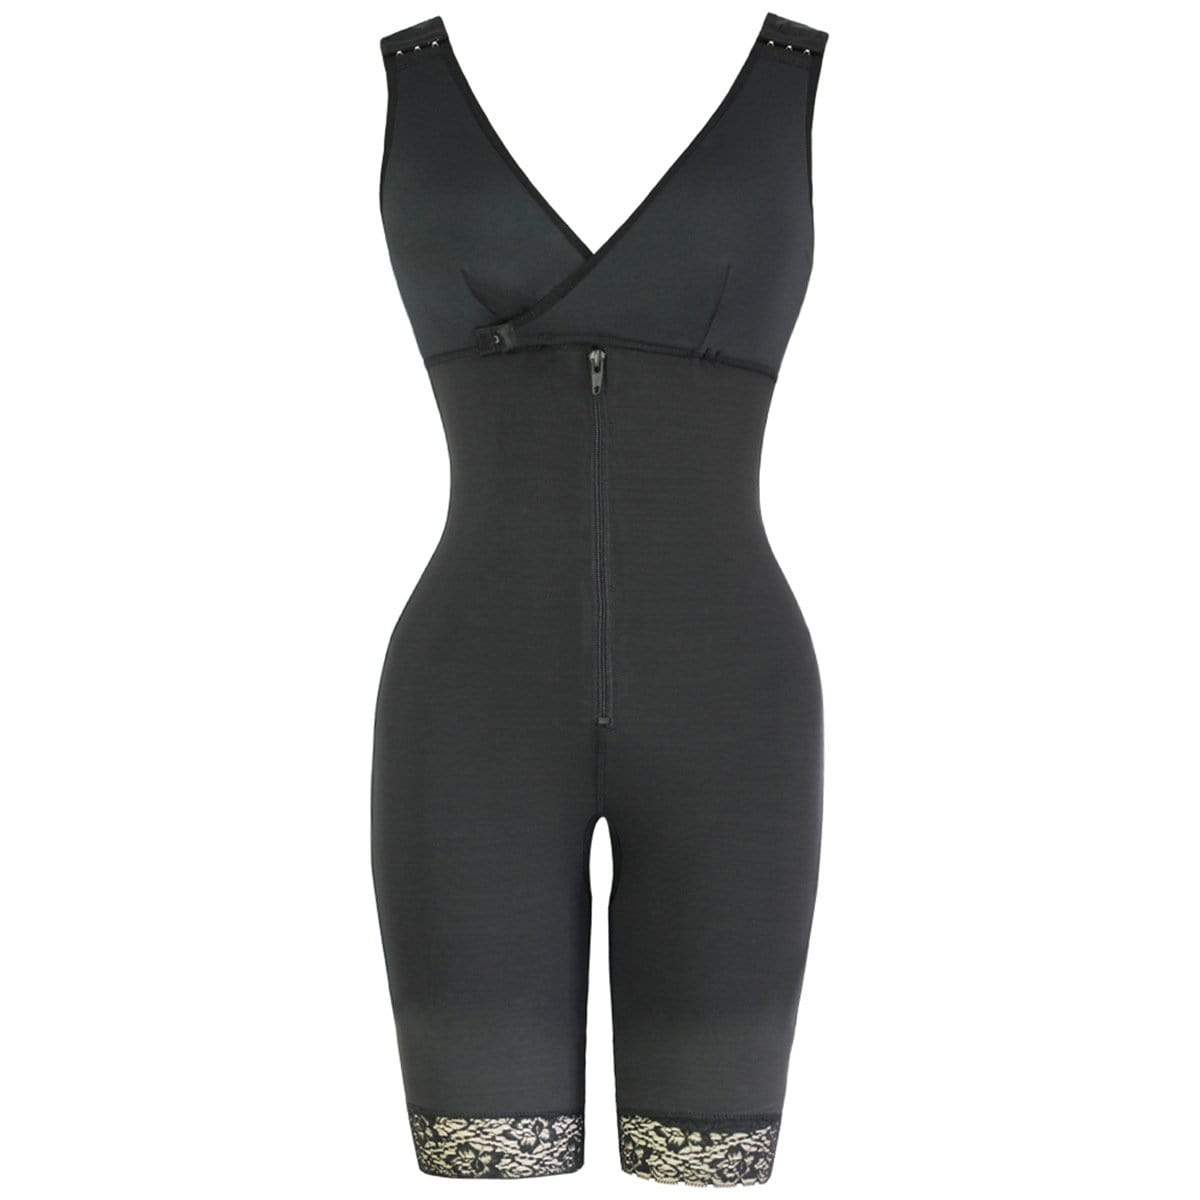 GOOPSS Shapewear Black / M Mid-Thigh Compression Shapewear